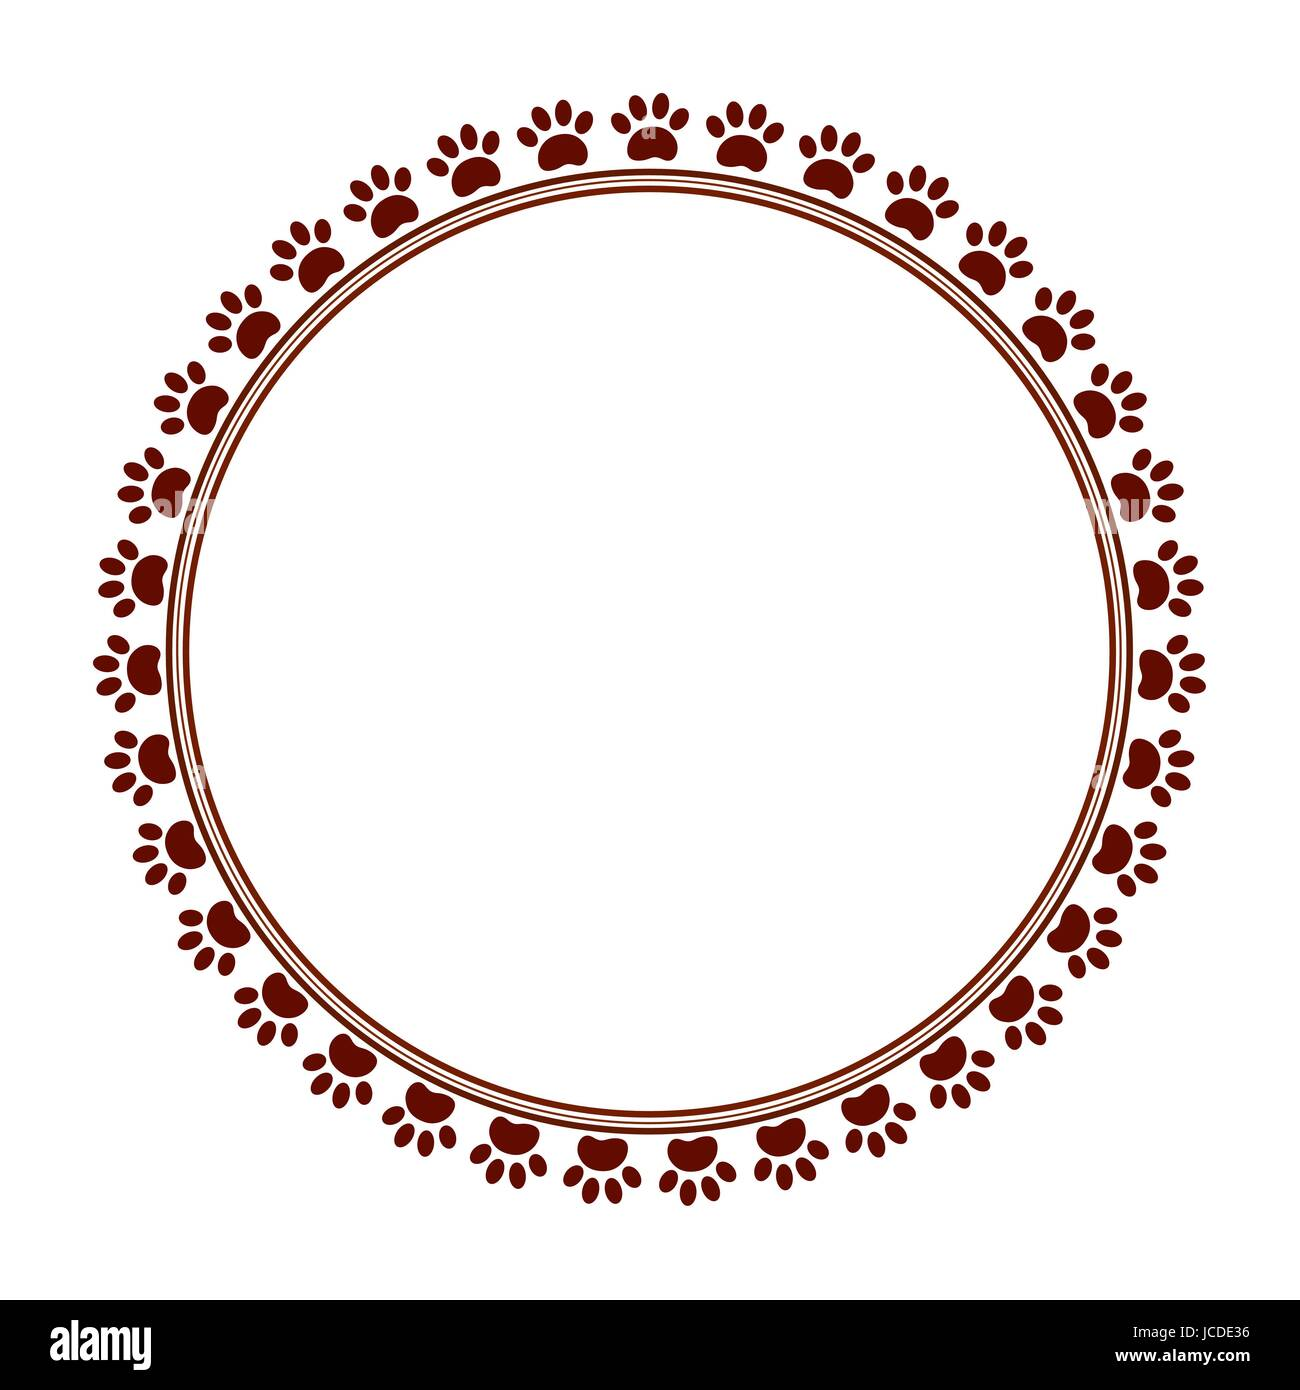 Brown paw prints animal round frame with empty space for your text ...